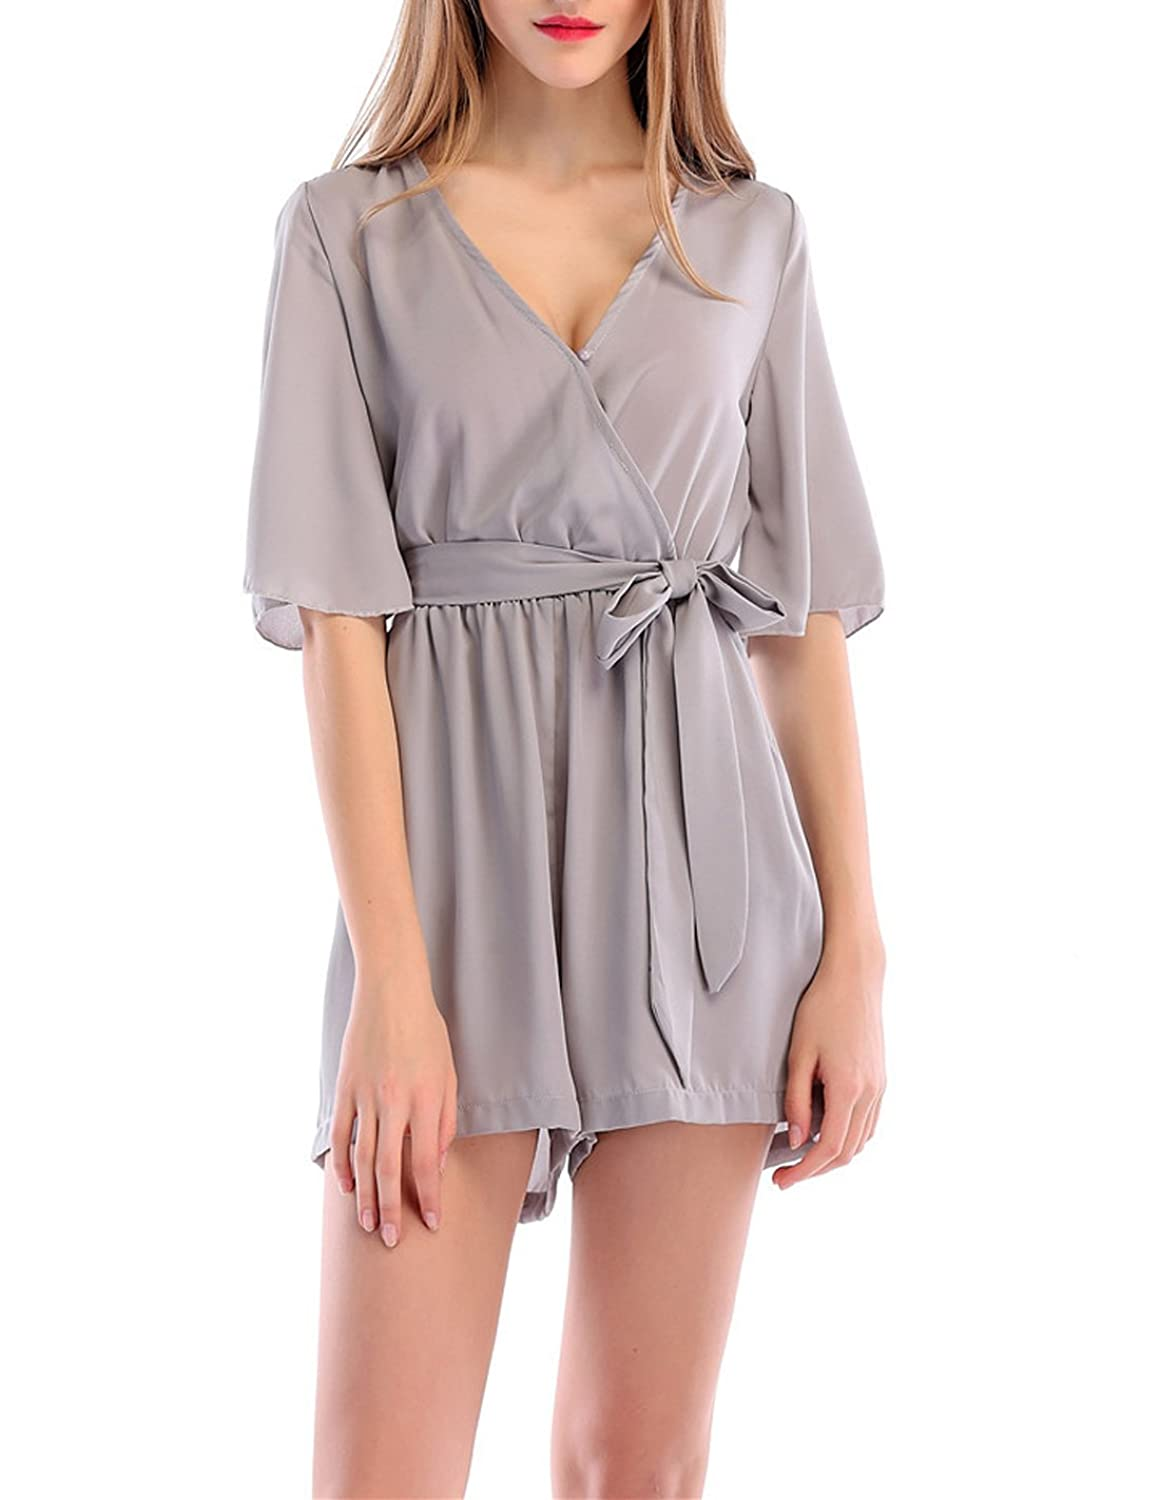 870dac6e6e71 JackenLOVE Summer Women Playsuits Loose Jumpsuits Shorts of Beach Party  with Belt Casual Solid Color Siamese Shorts Chiffon Rompers Mini Dress  Fashions V ...